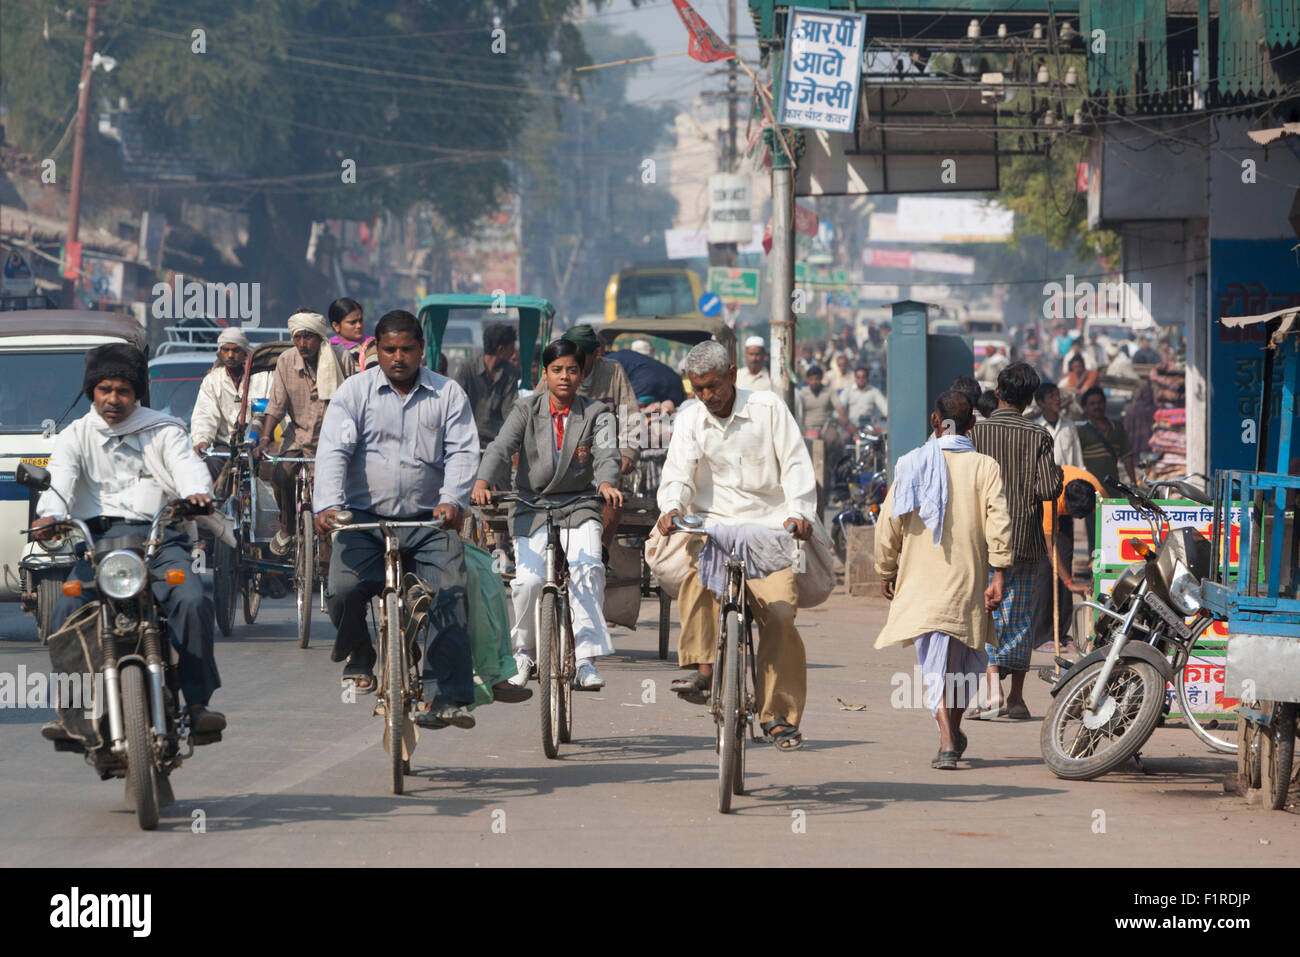 Bicyclists and other traffic on crowded, dusty Raja Bazaar Rd in Varanasi India - Stock Image